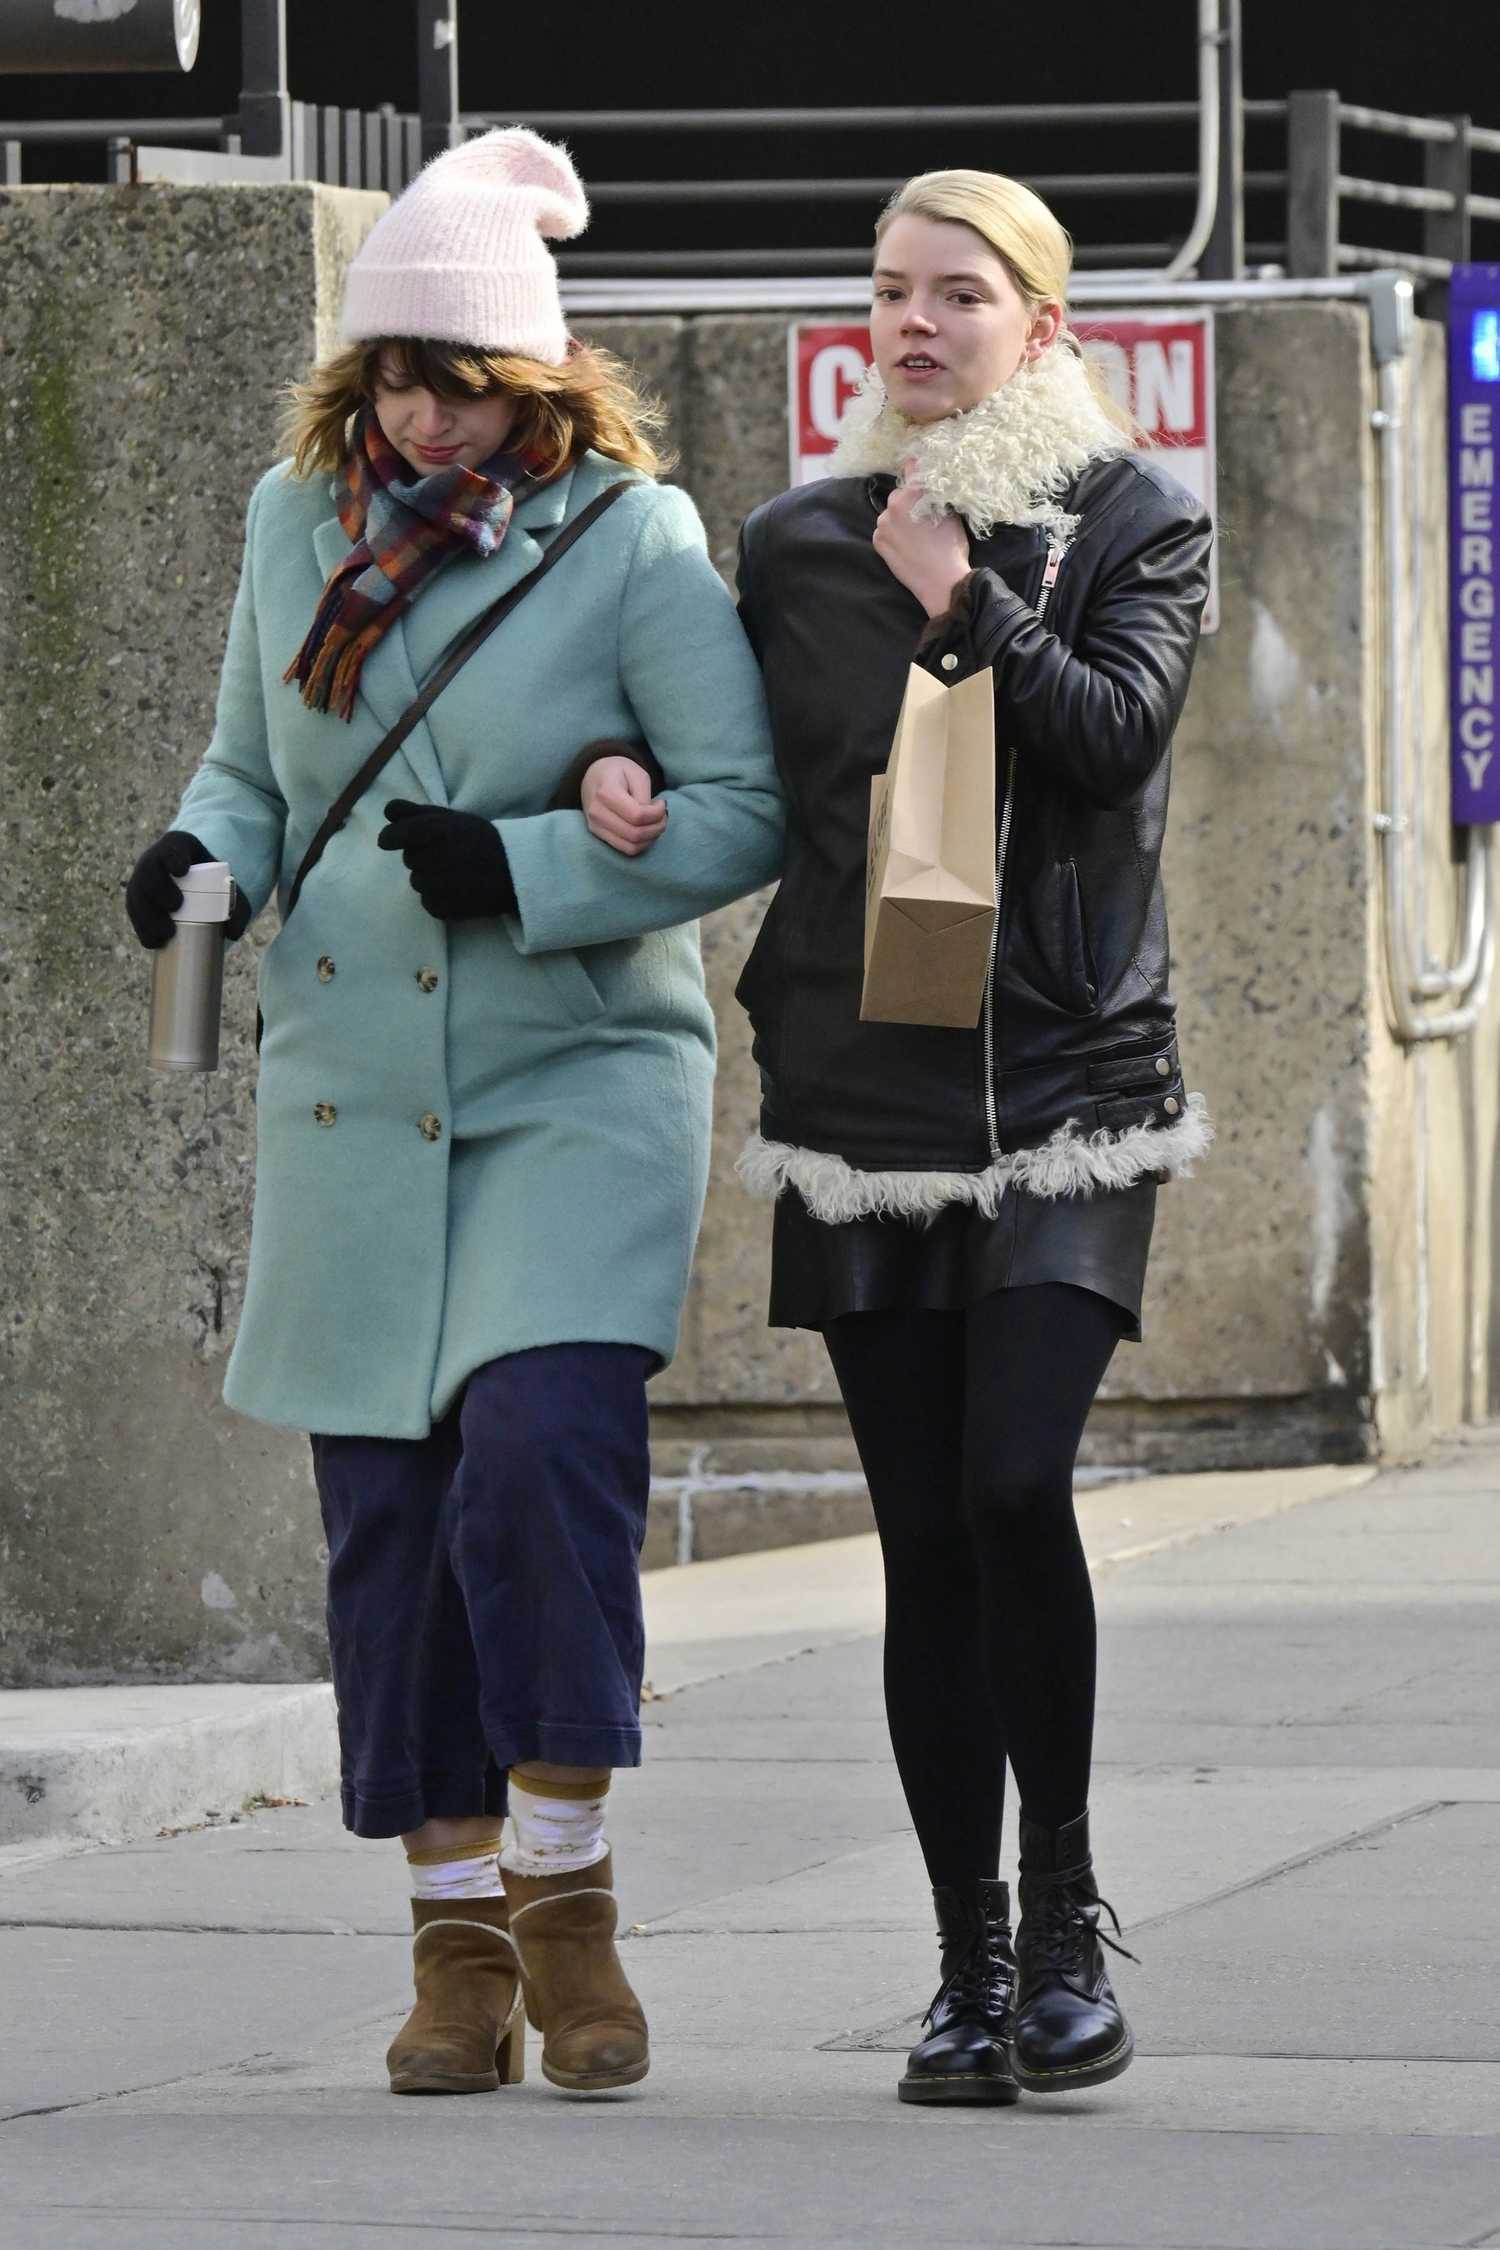 Homepage Fashion: Anya Taylor-Joy Goes Shopping Out With A Gal Pal In NYC